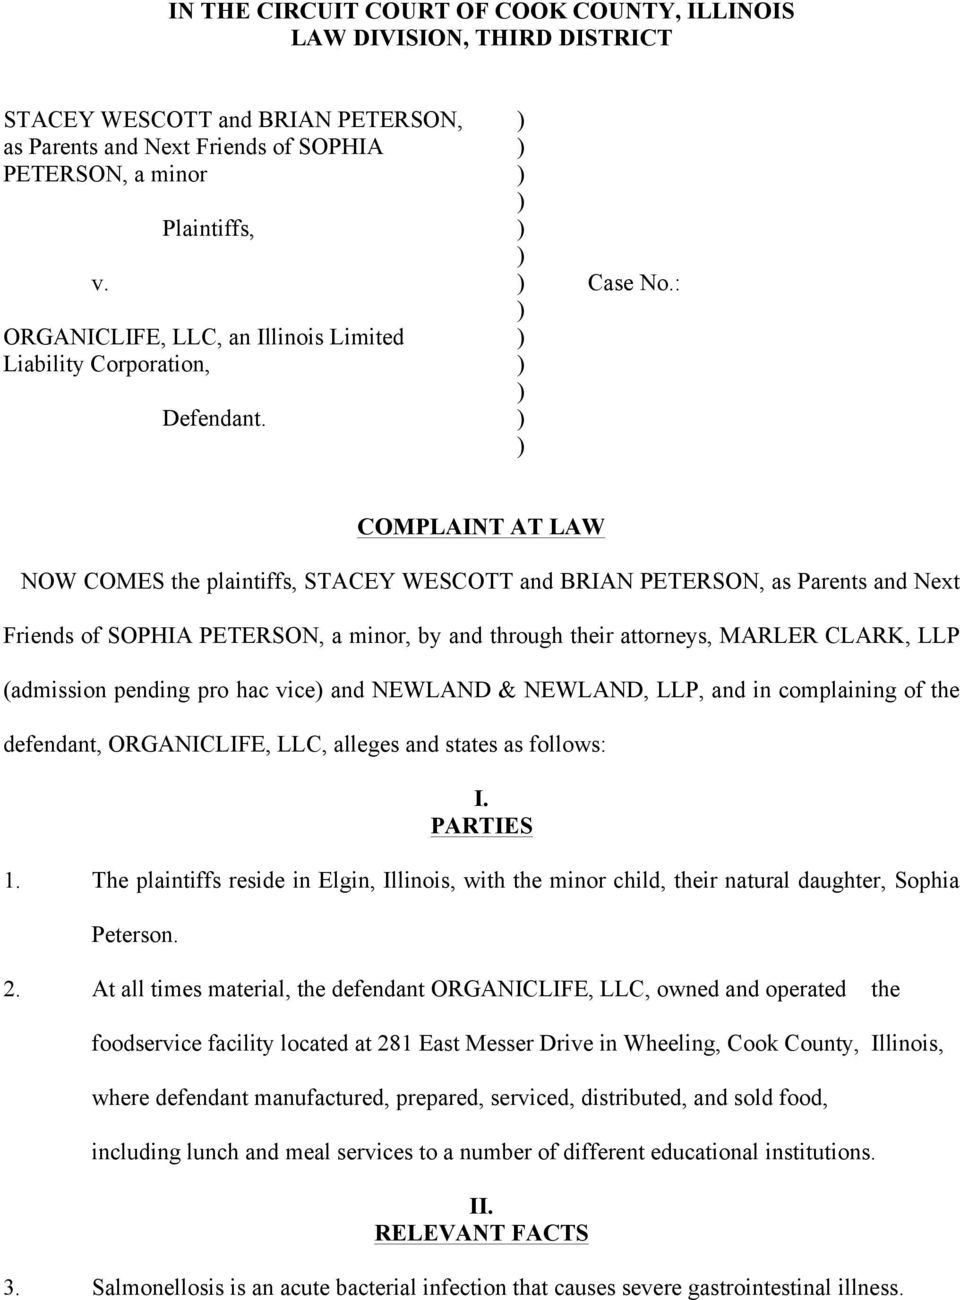 COMPLAINT AT LAW NOW COMES the plaintiffs, STACEY WESCOTT and BRIAN PETERSON, as Parents and Next Friends of SOPHIA PETERSON, a minor, by and through their attorneys, MARLER CLARK, LLP (admission